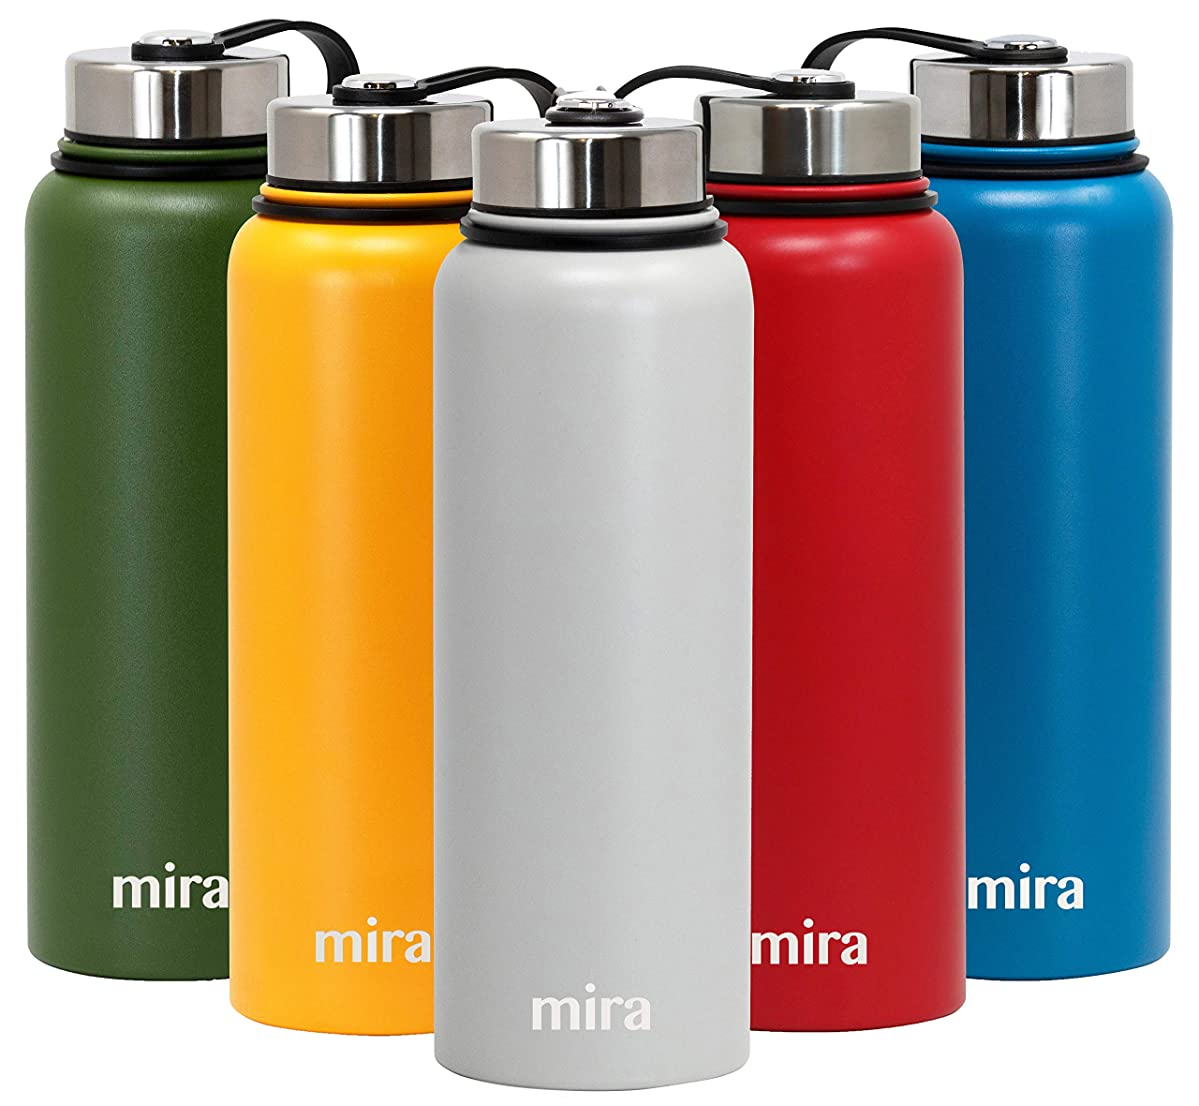 MIRA 40 Oz Stainless Steel Vacuum Insulated Wide Mouth Water Bottle | Thermos Keeps Cold for 24 hours, Hot for 12 hours | Double Walled Powder Coated Travel Flask | Silver Gray